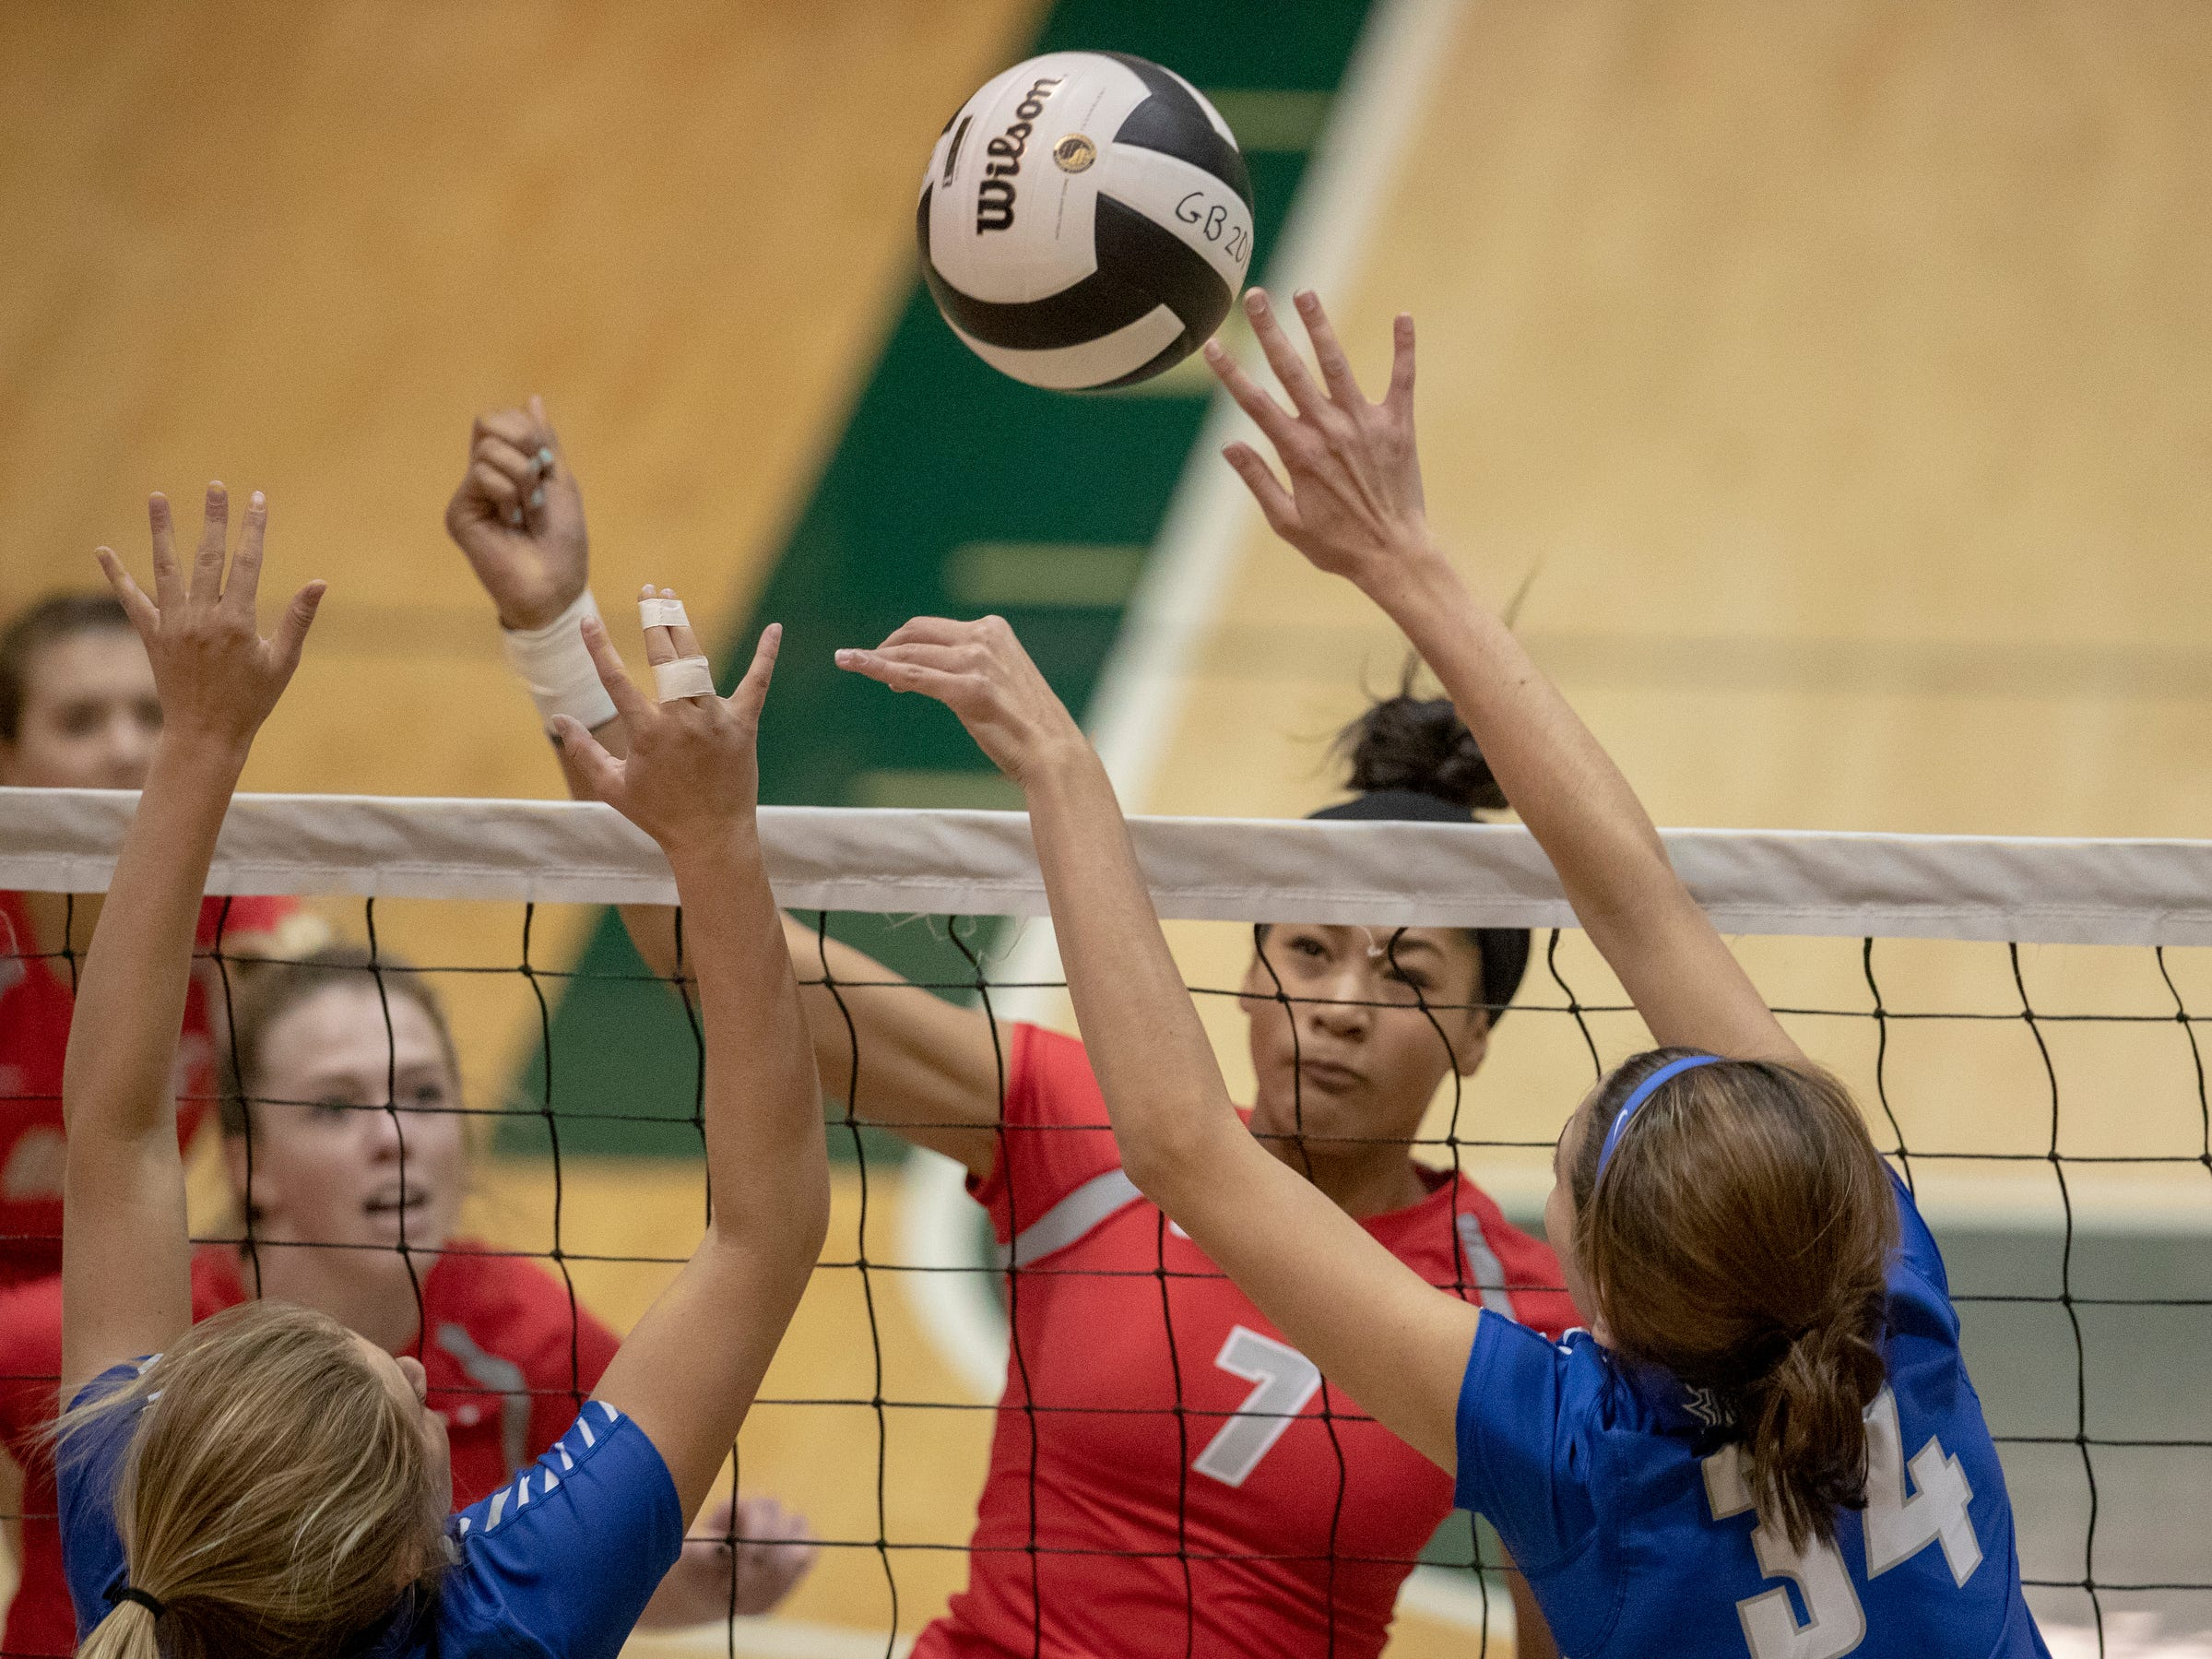 Hamilton Southeastern High School (foreground), and Jada Allen of Fishers High School work at the net as FHS wins in three straight sets in the first round of the volleyball sectional at Westfield High School, Westfield, Thursday, Oct. 11, 2018. The win matches them up with Westfield High School for a game on Saturday morning at 11a.m.